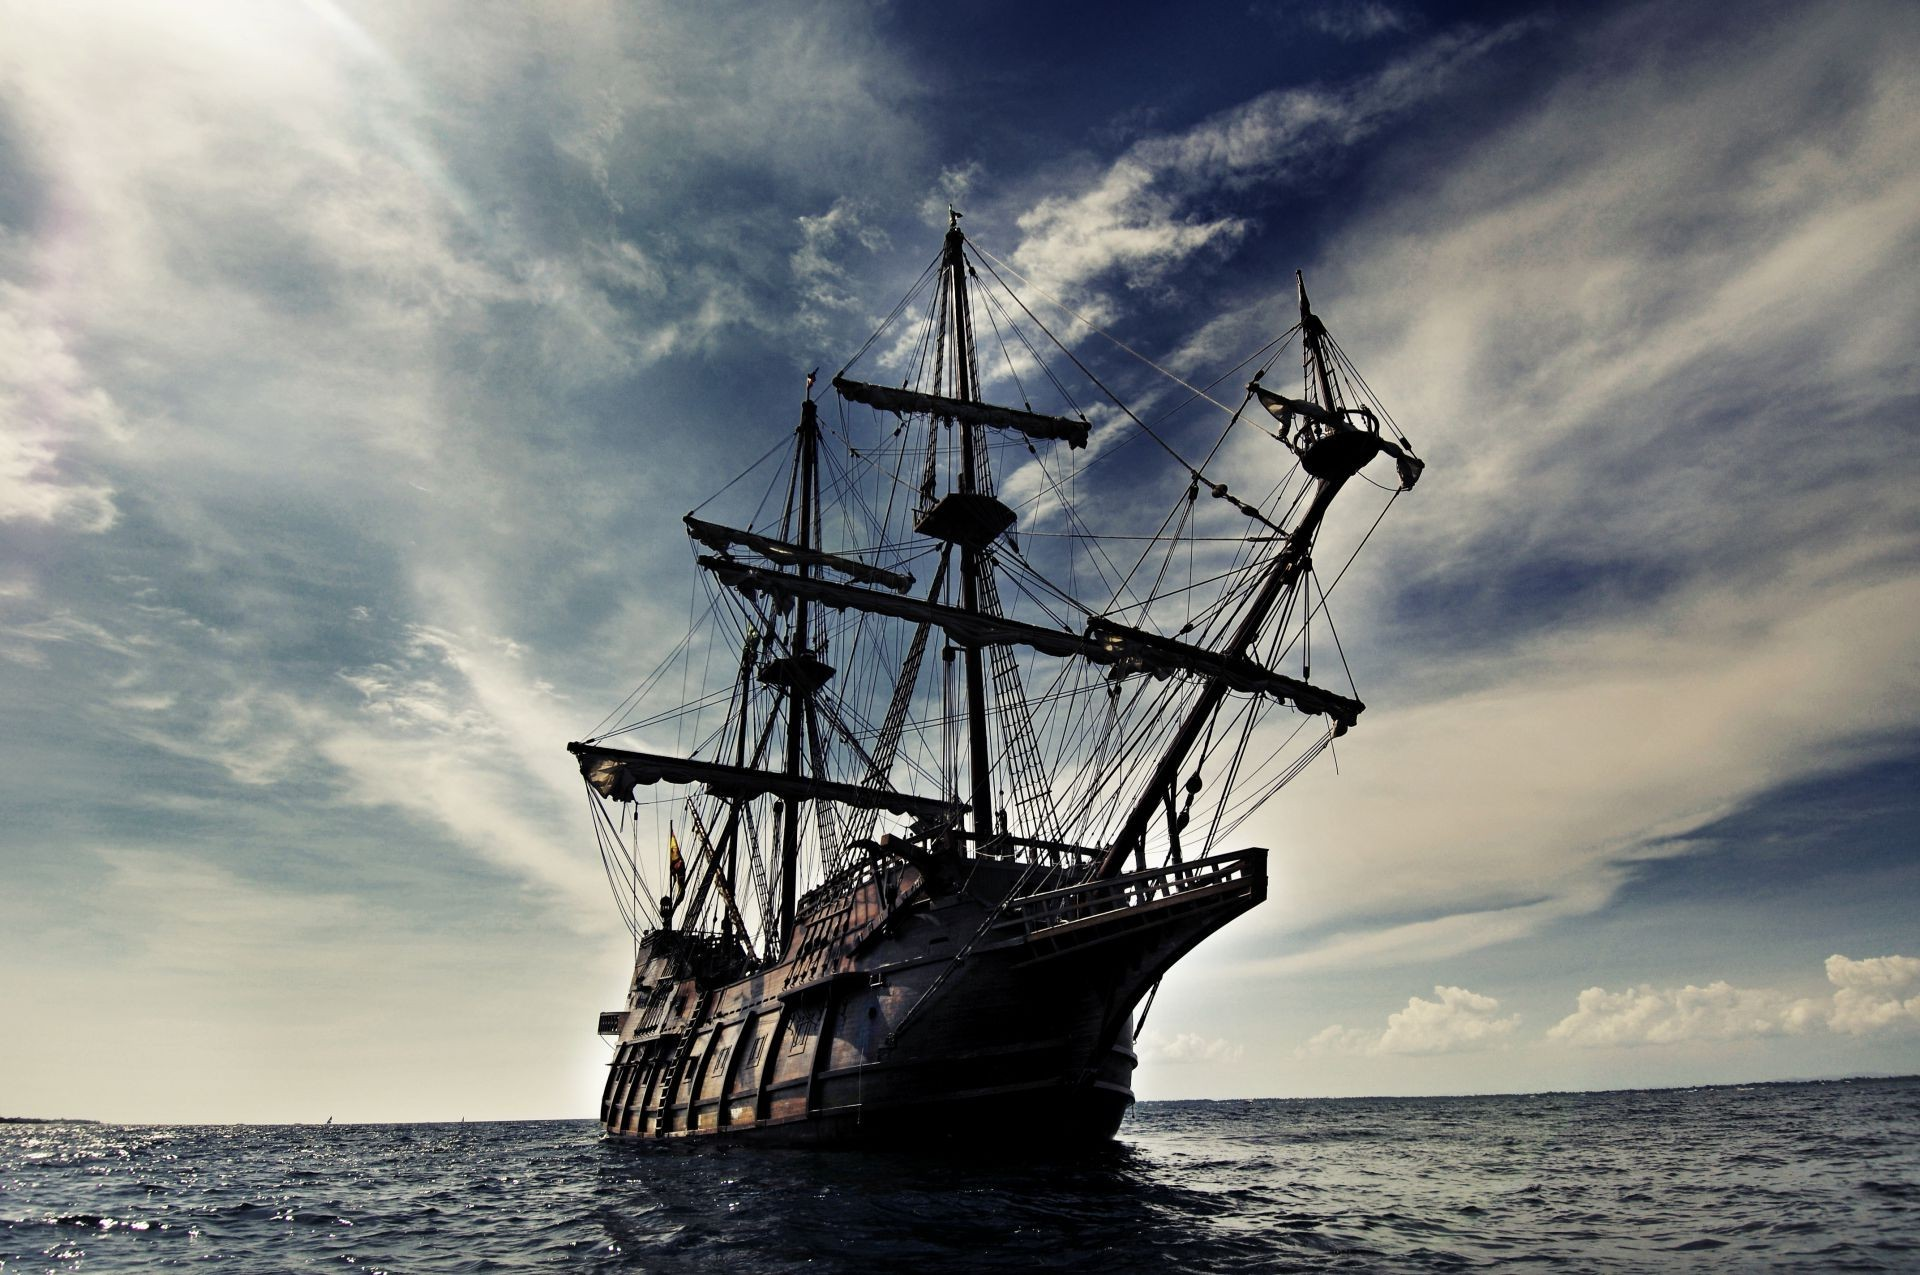 Res: 1920x1275, Ship Galleon sailing sea waves sky clouds landscape. Android wallpapers for  free.